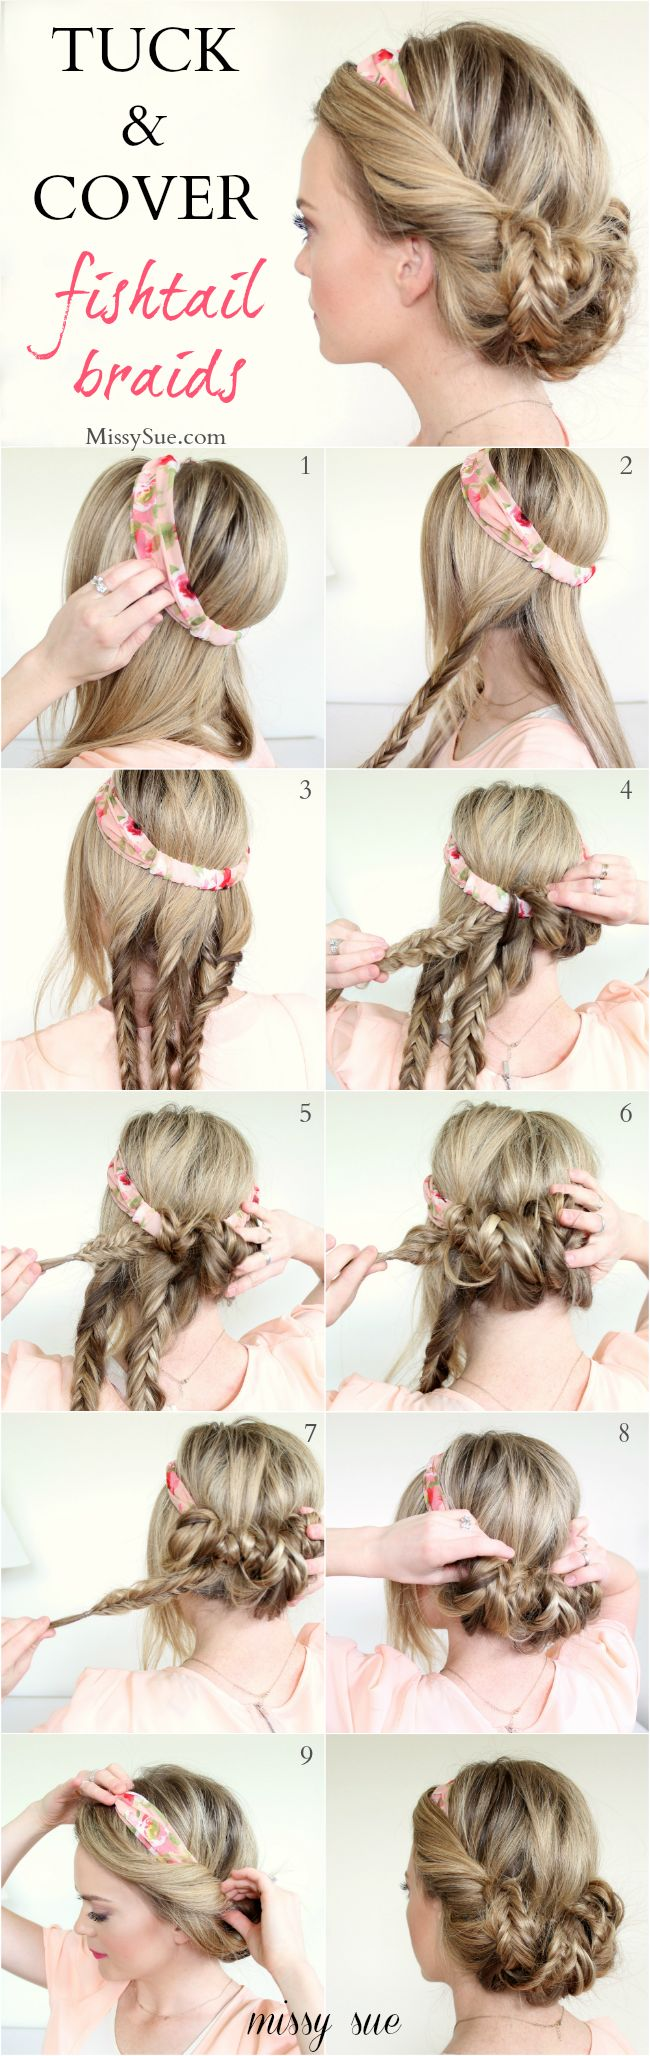 Tuck and Cover Fishtail Braids: